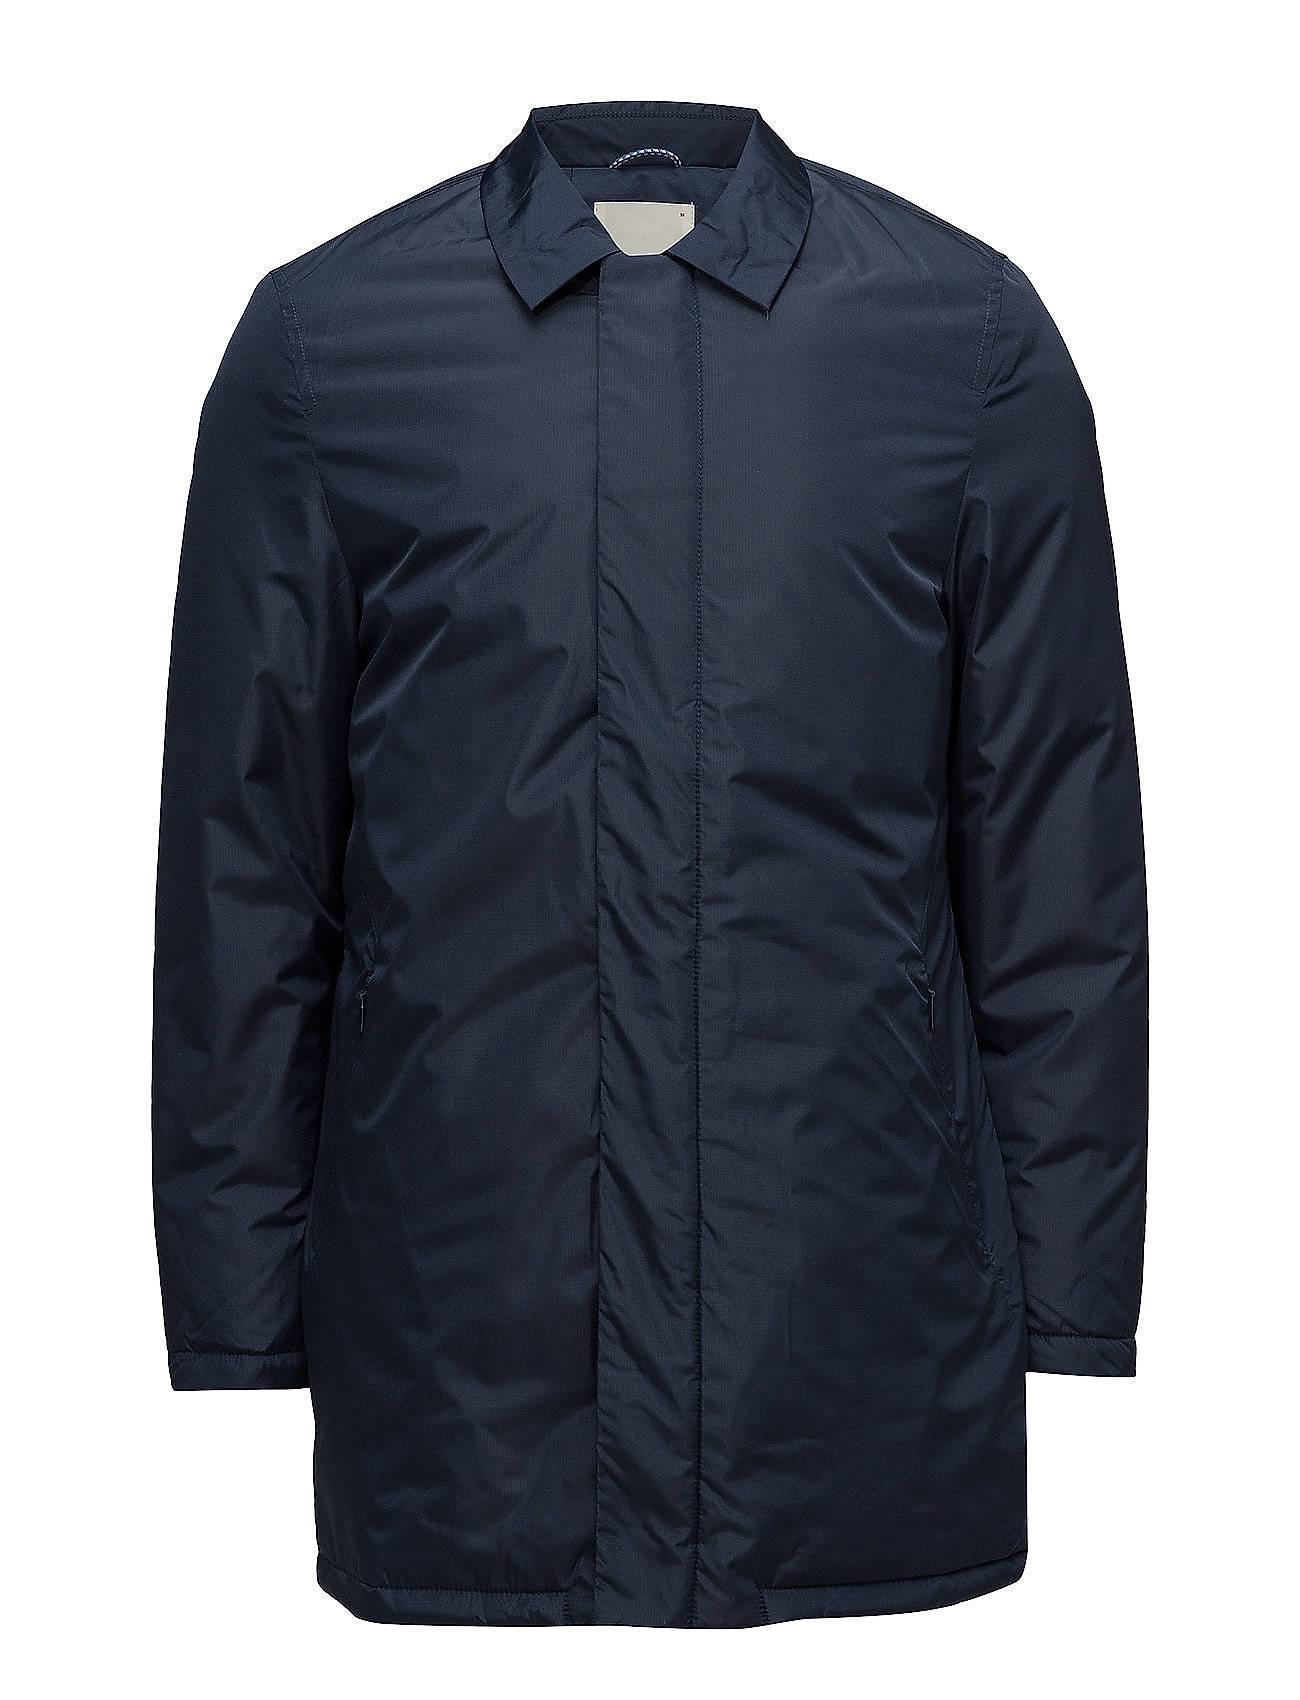 Knowledge Cotton Apparel Rib Stop Functional Long Jacket - G